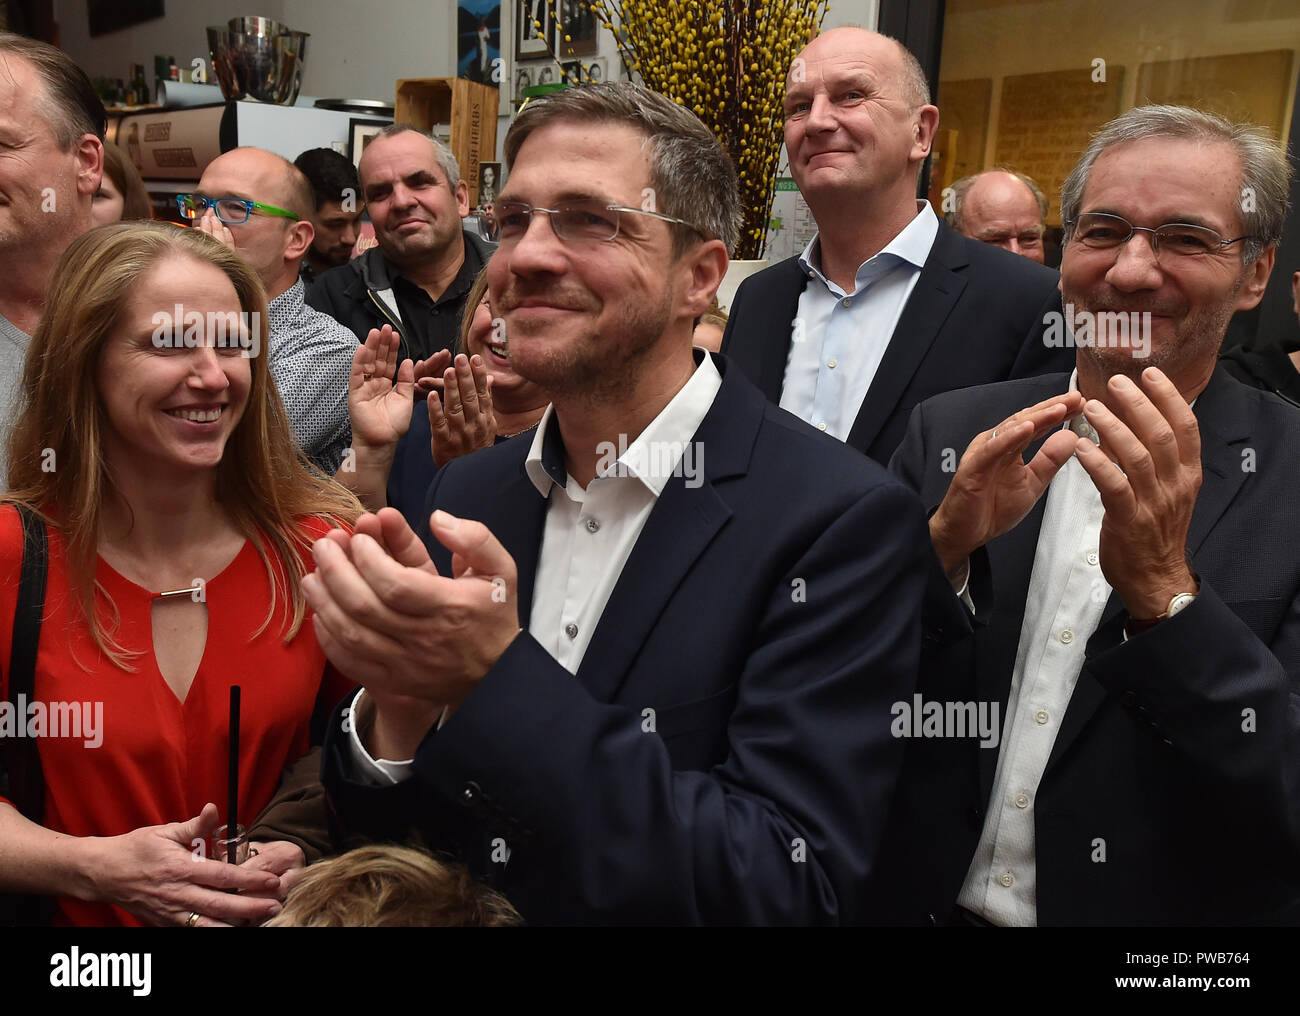 Potsdam, Brandenburg. 14th Oct, 2018. 14 October 2018, Germany, Potsdam: Mike Schubert (SPD) is at the election party between his wife Simoned, Dietmar Woidke (SPD, 2-R), Minister President of Brandenburg, and Matthias Platzeck (SPD, R), former Minister President of Brandenburg. Schubert was elected new Lord Mayor with 55.3 percent of the votes. Credit: Bernd Settnik/dpa-Zen tralbild/dpa/Alamy Live News - Stock Image